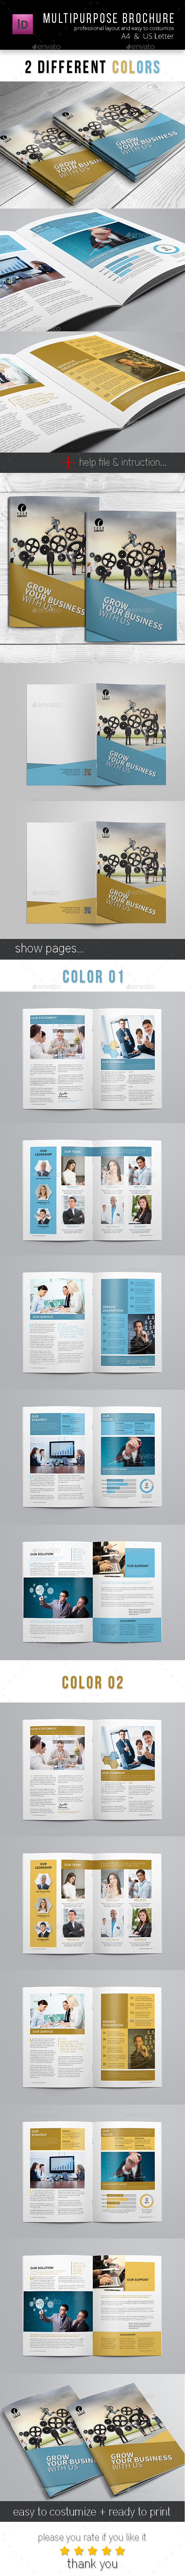 GraphicRiver Corporate Business Brochure 12 pages A4 & Letter 11102435